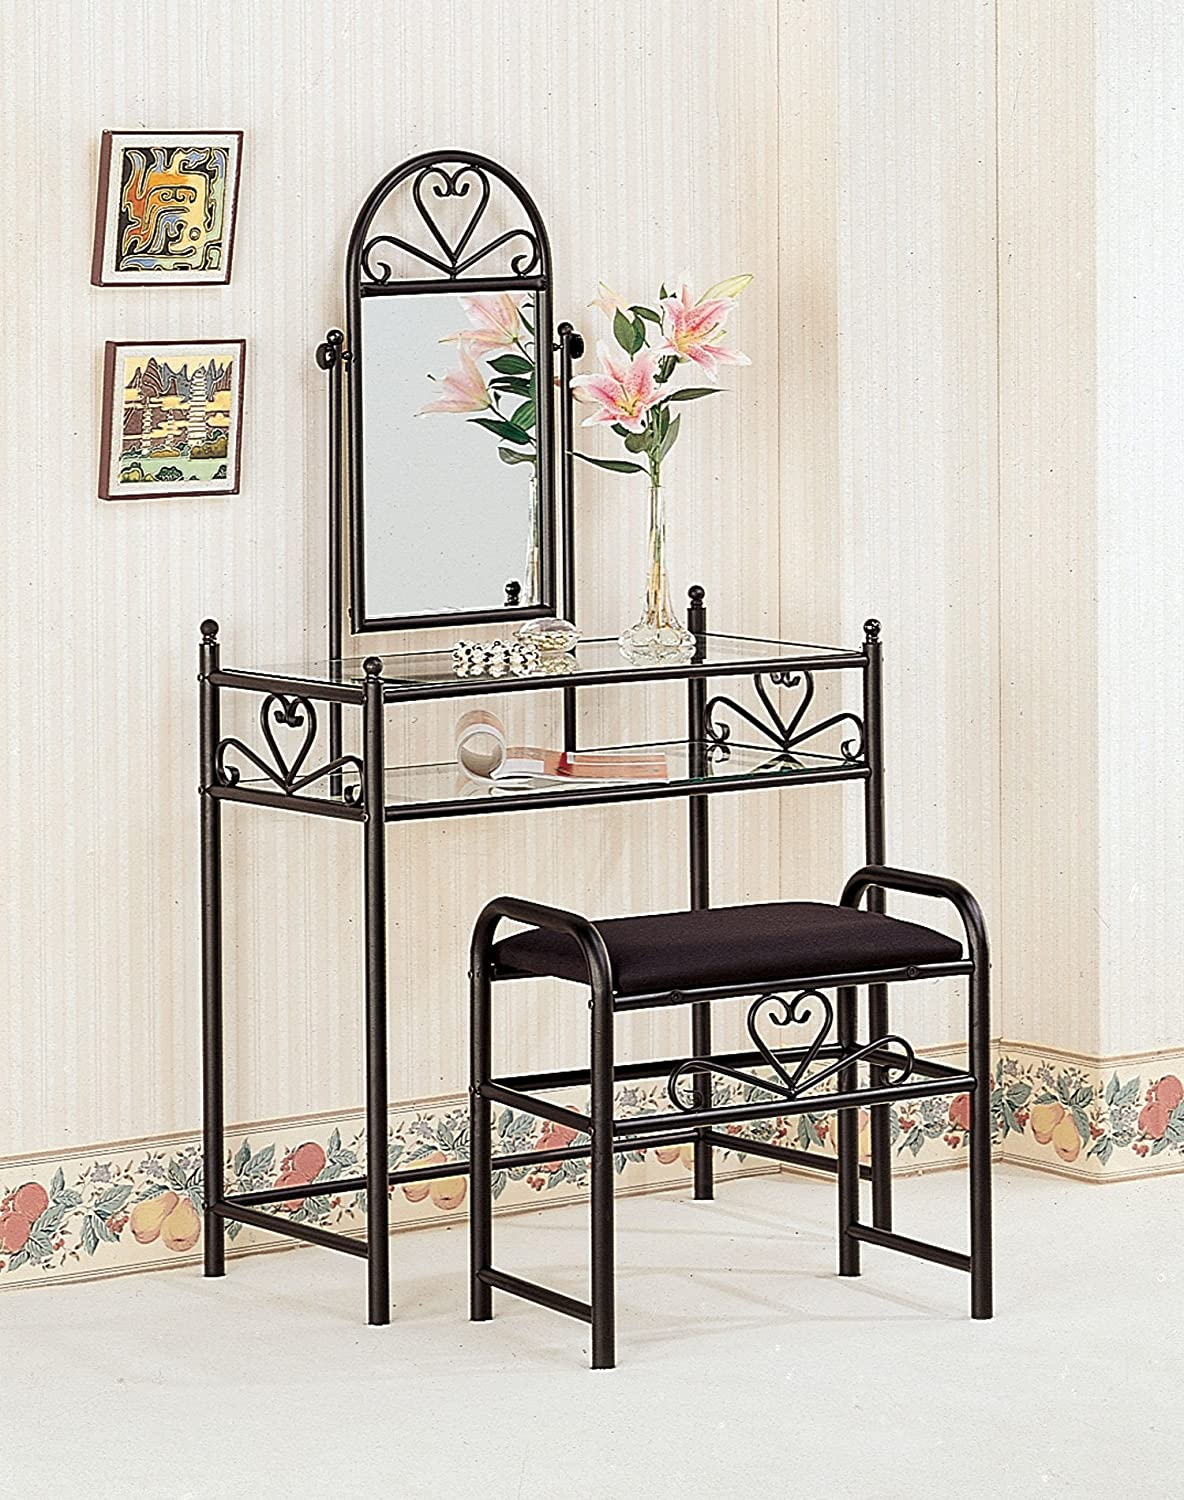 Top 6 Best Cheap Makeup Vanity Table with Mirror Reviews in 2021 4